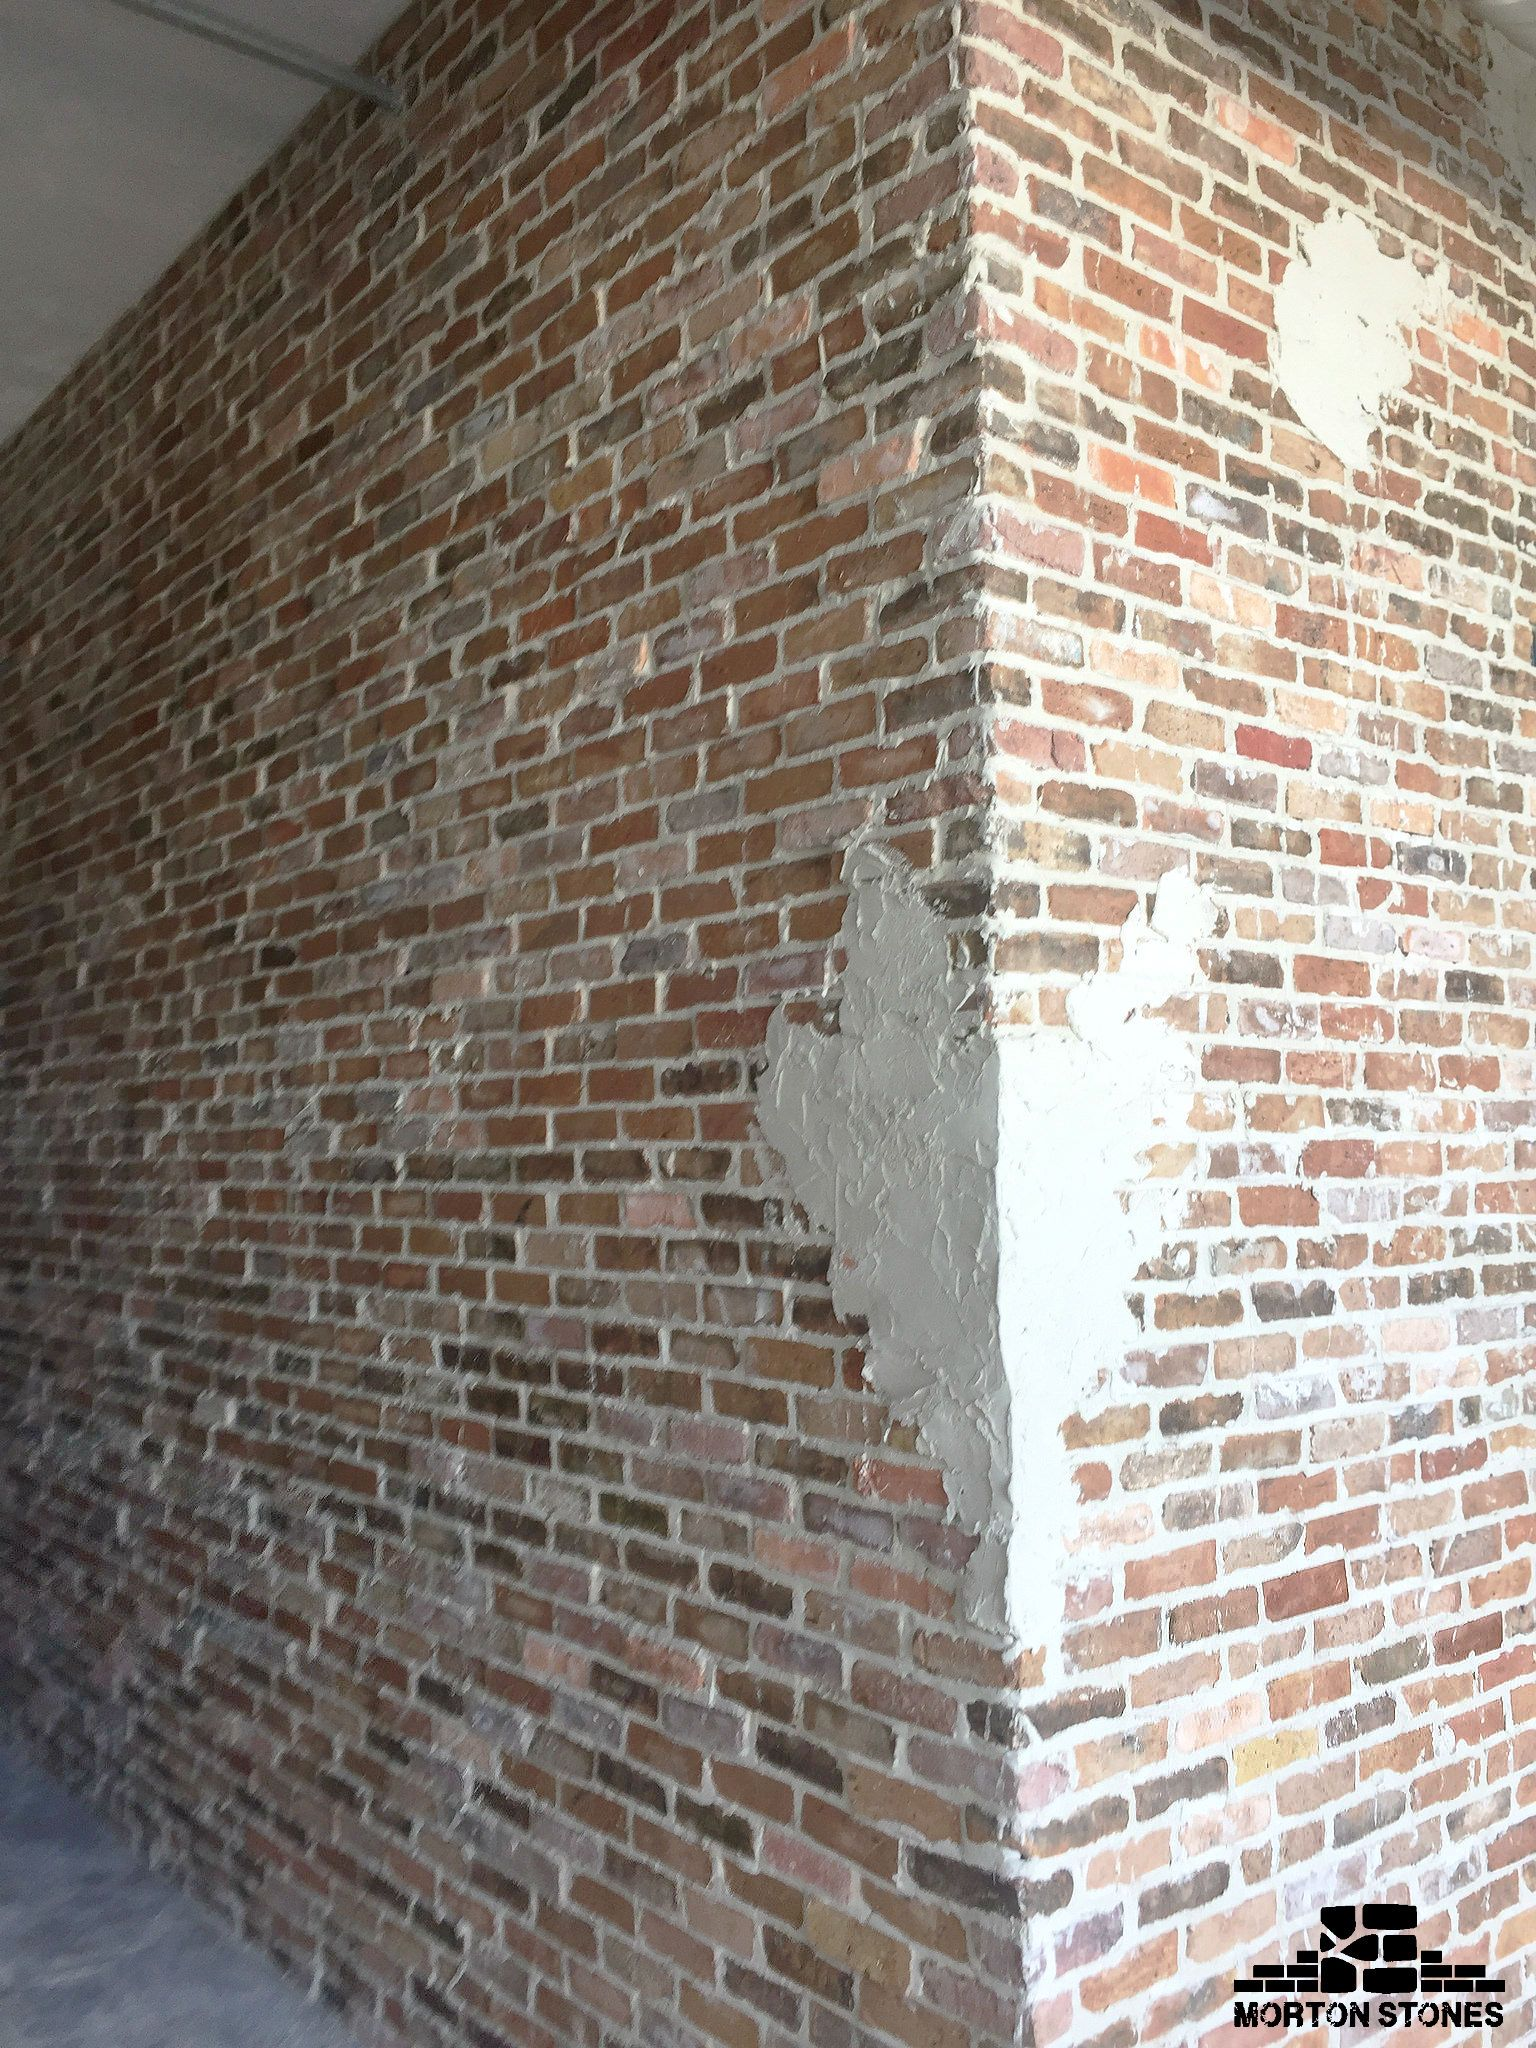 The Unfinished Brick Veneer Wall Adds Elegance To The Space Mortonstones Brick Tiles Rustic Thinbric Brick Veneer Wall Brick Veneer Interior Design Games